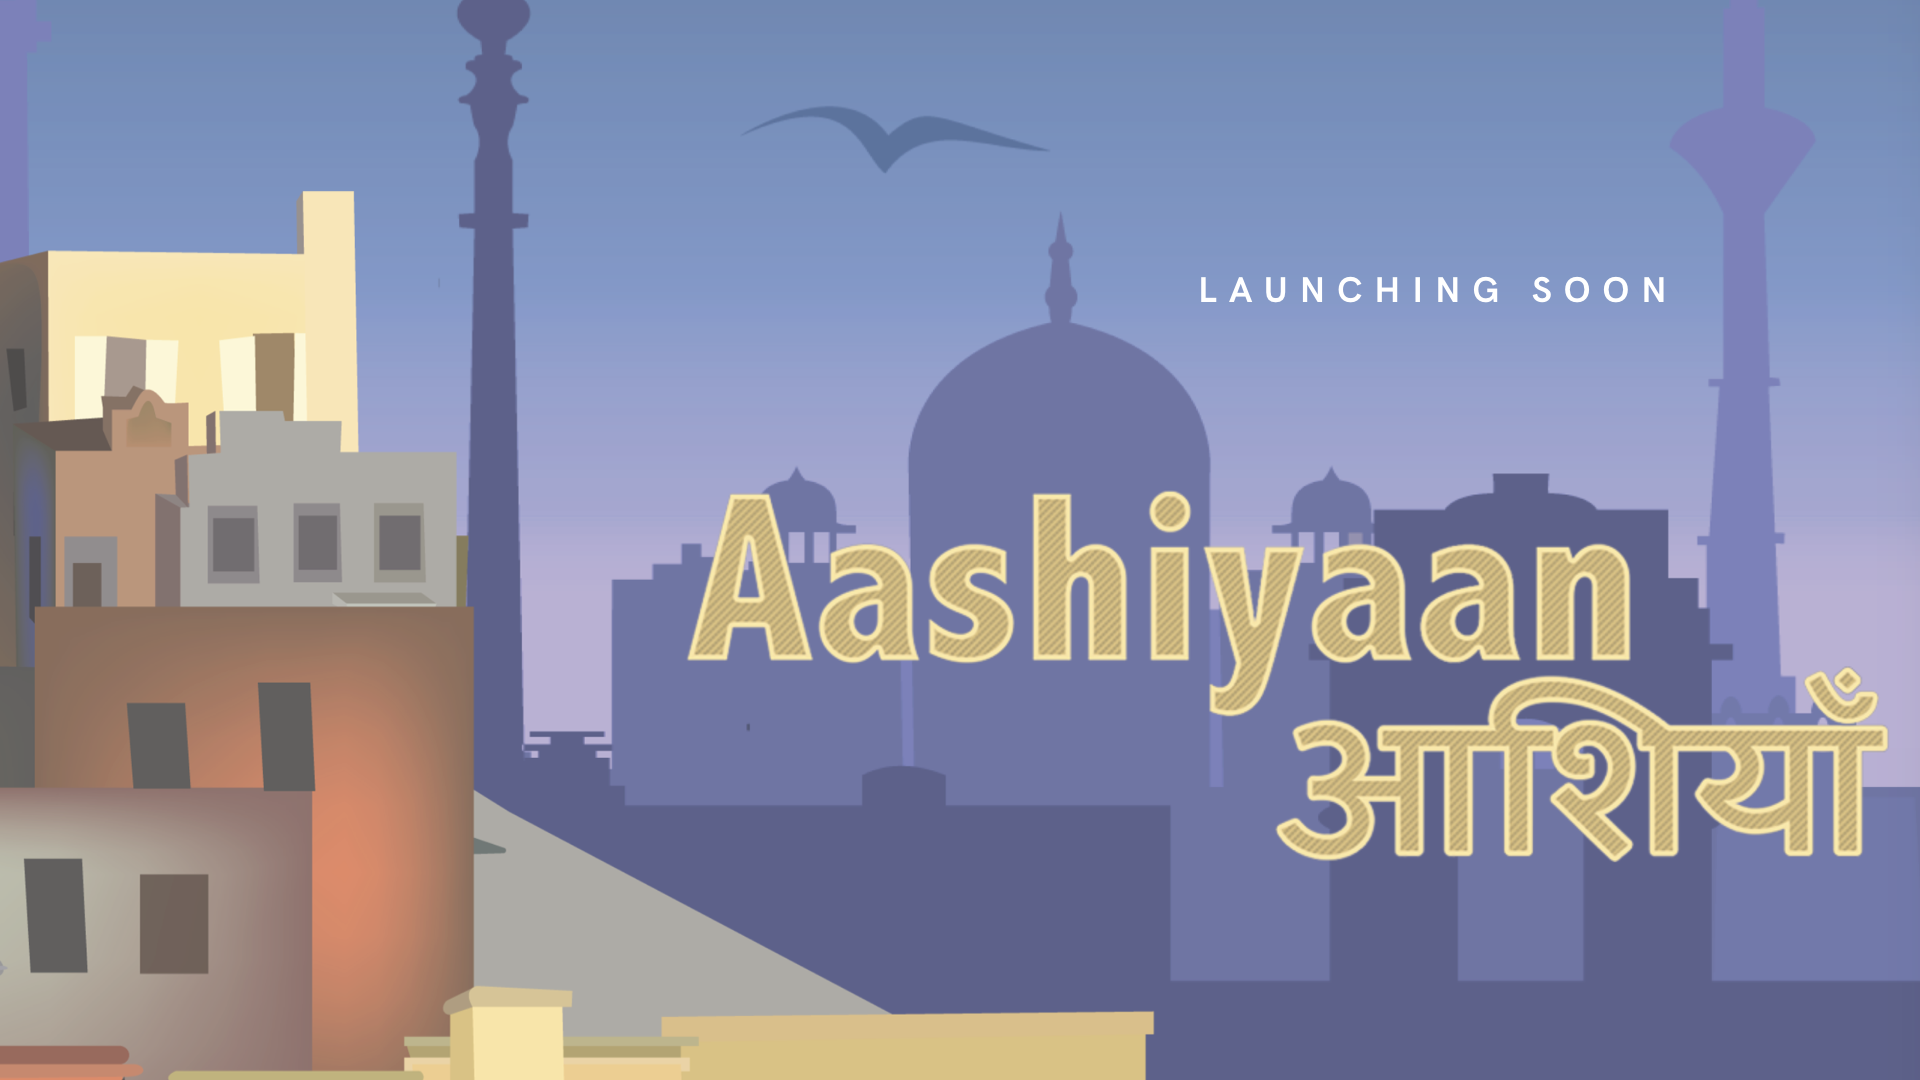 aashiyaan city illustration with the text 'launching soon'